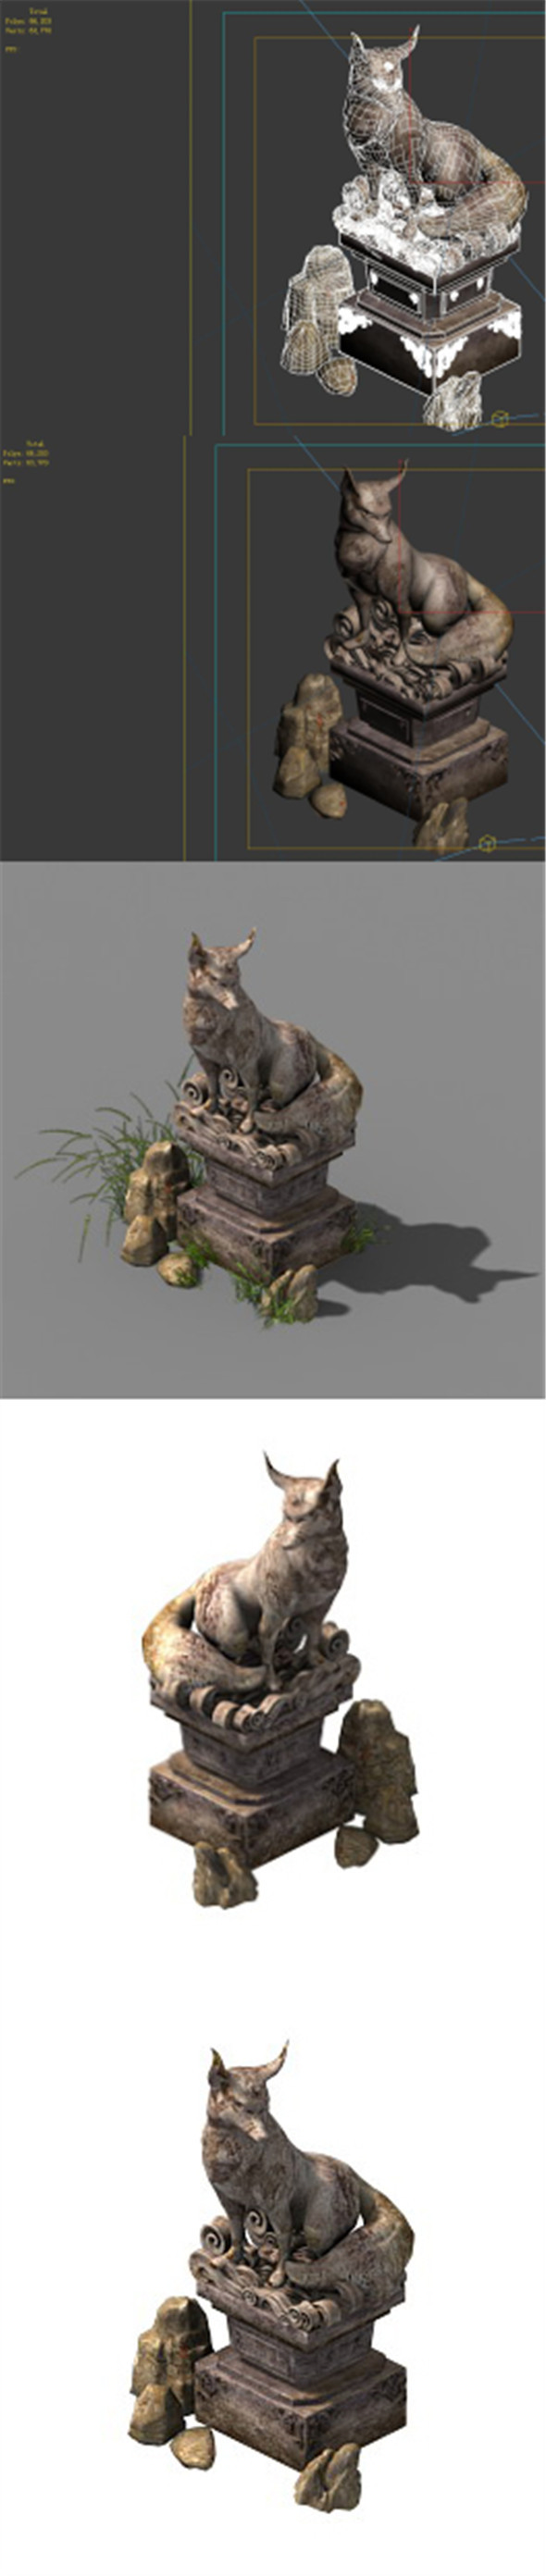 Game Model - Fox - Statue - 3DOcean Item for Sale